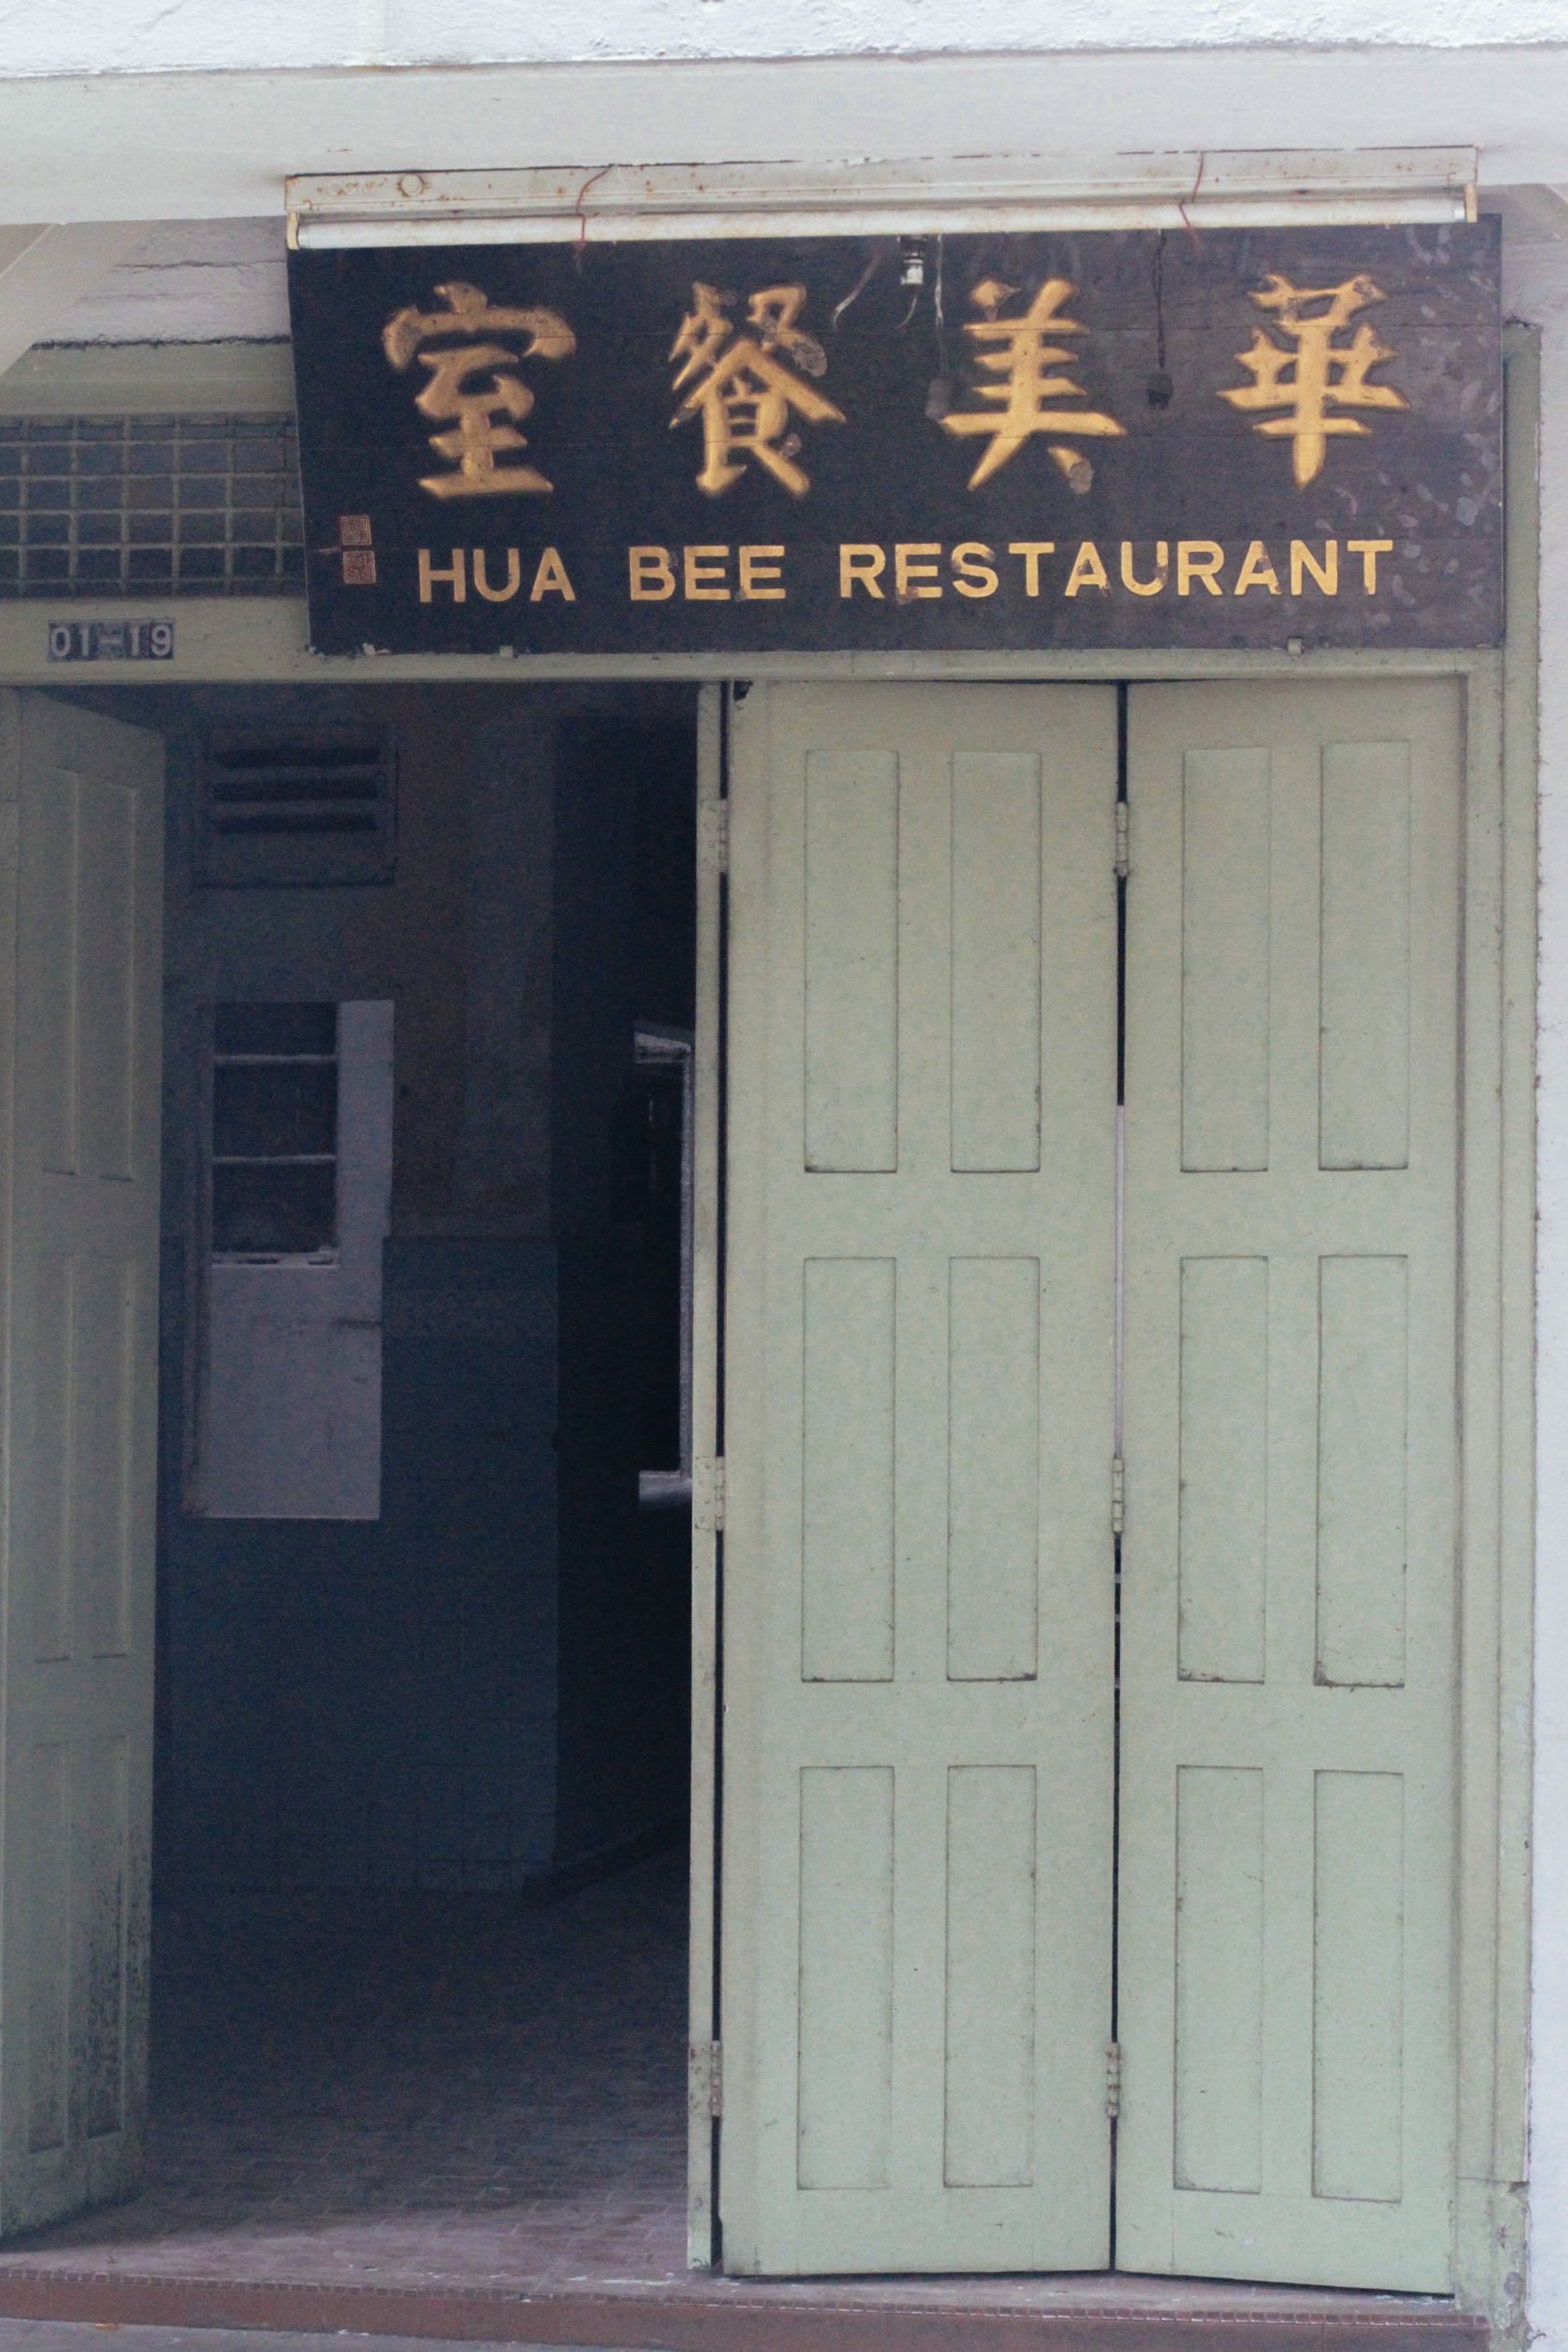 Hua Bee as it was being renovated. Photo: Carol